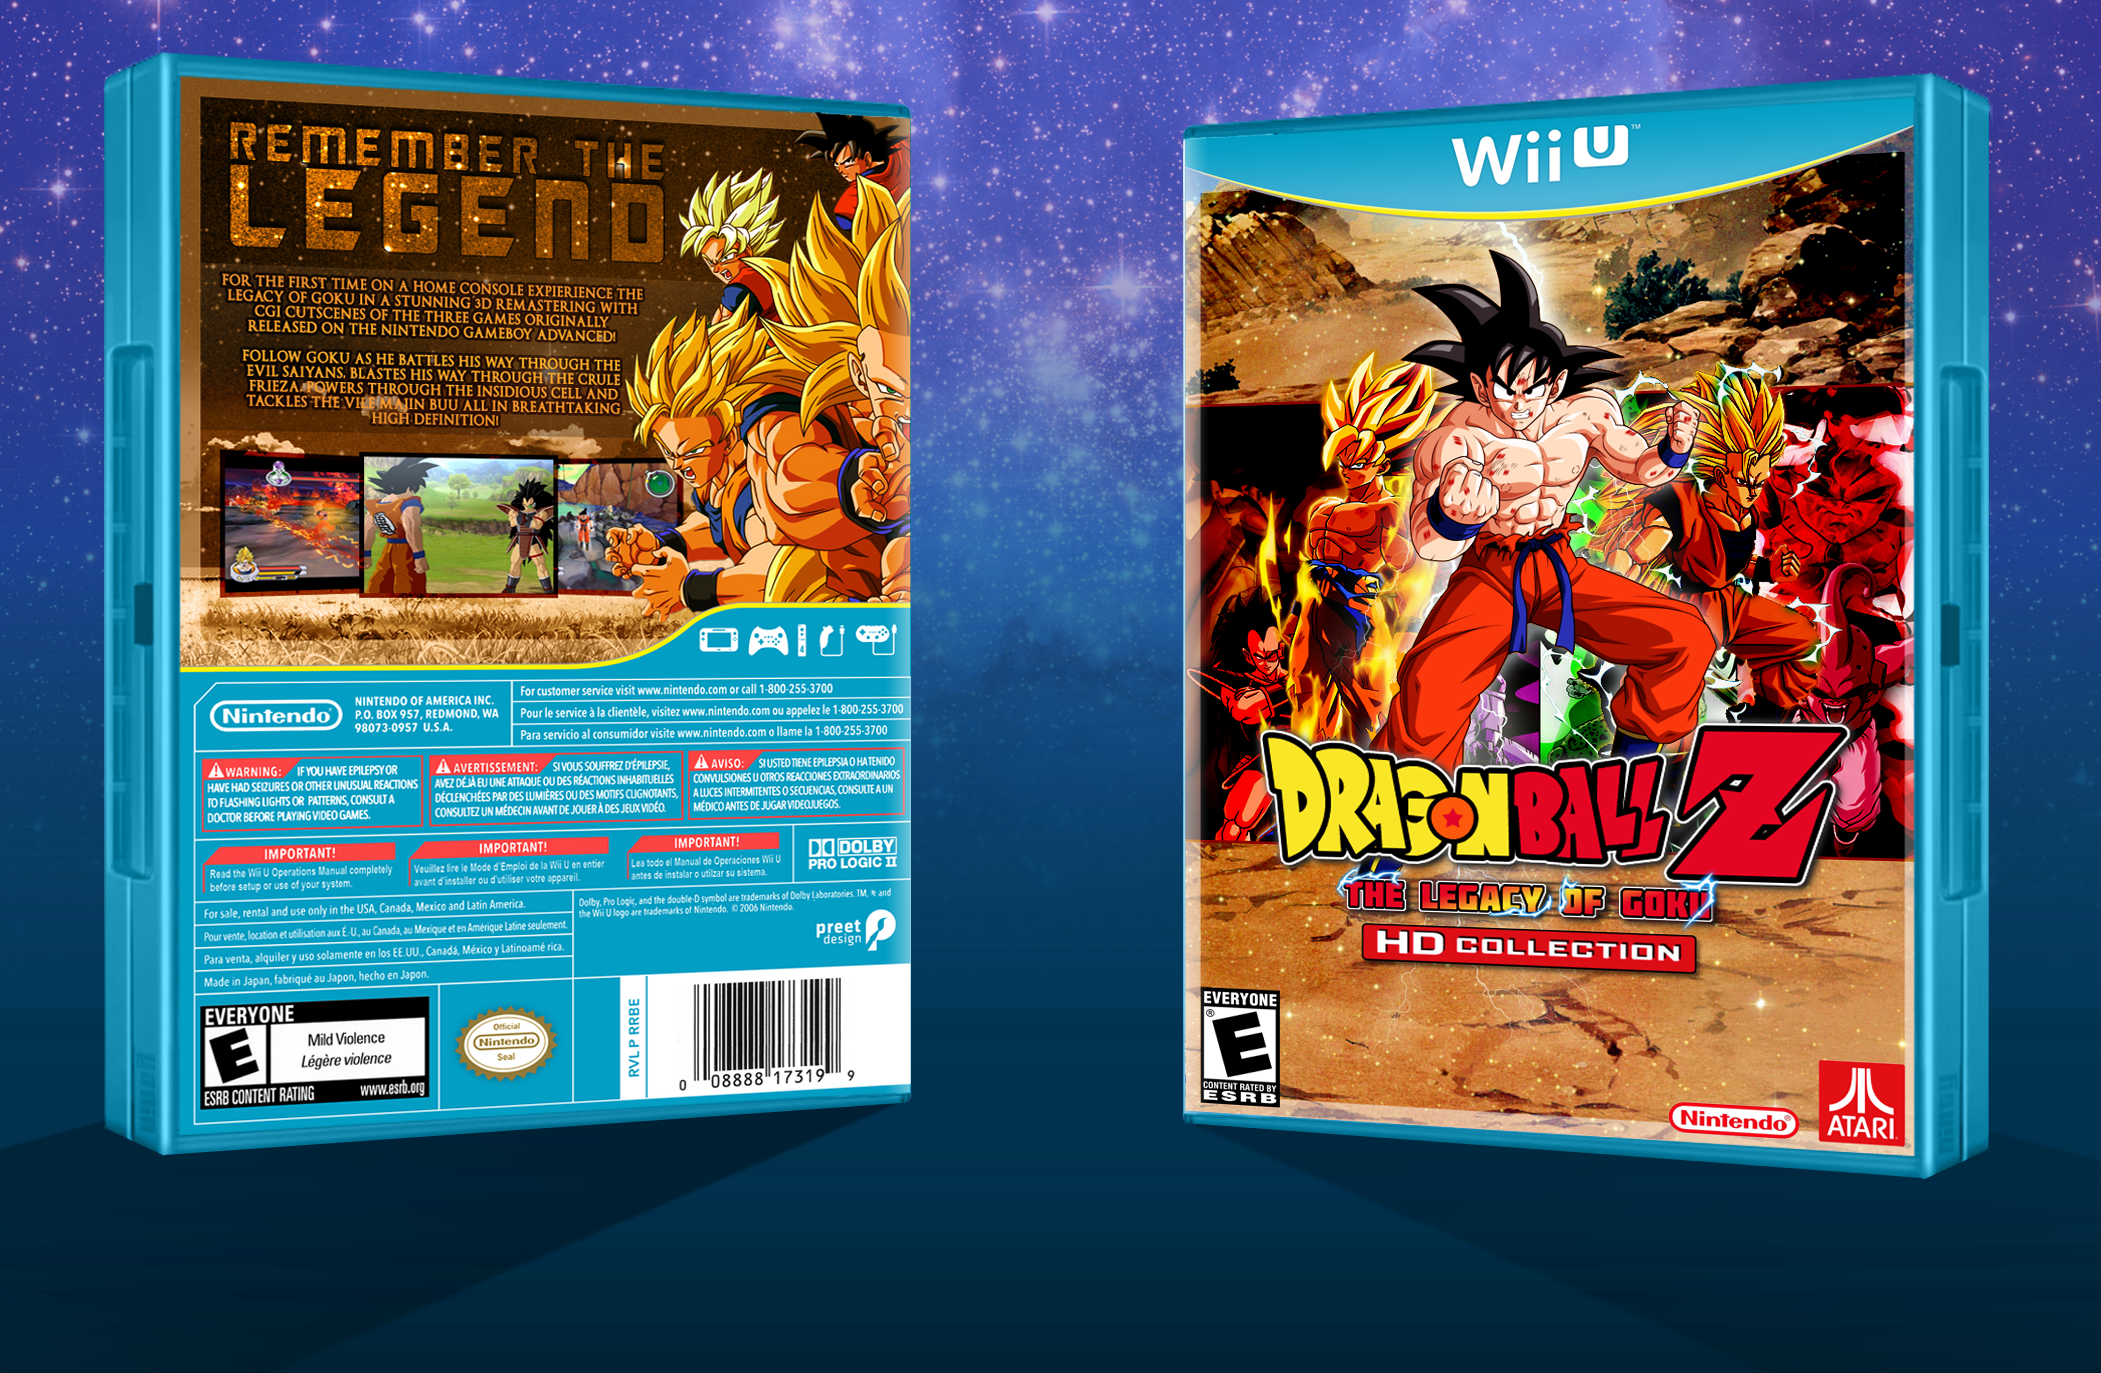 Dragon Ball Z: The Legacy of Goku - HD box cover